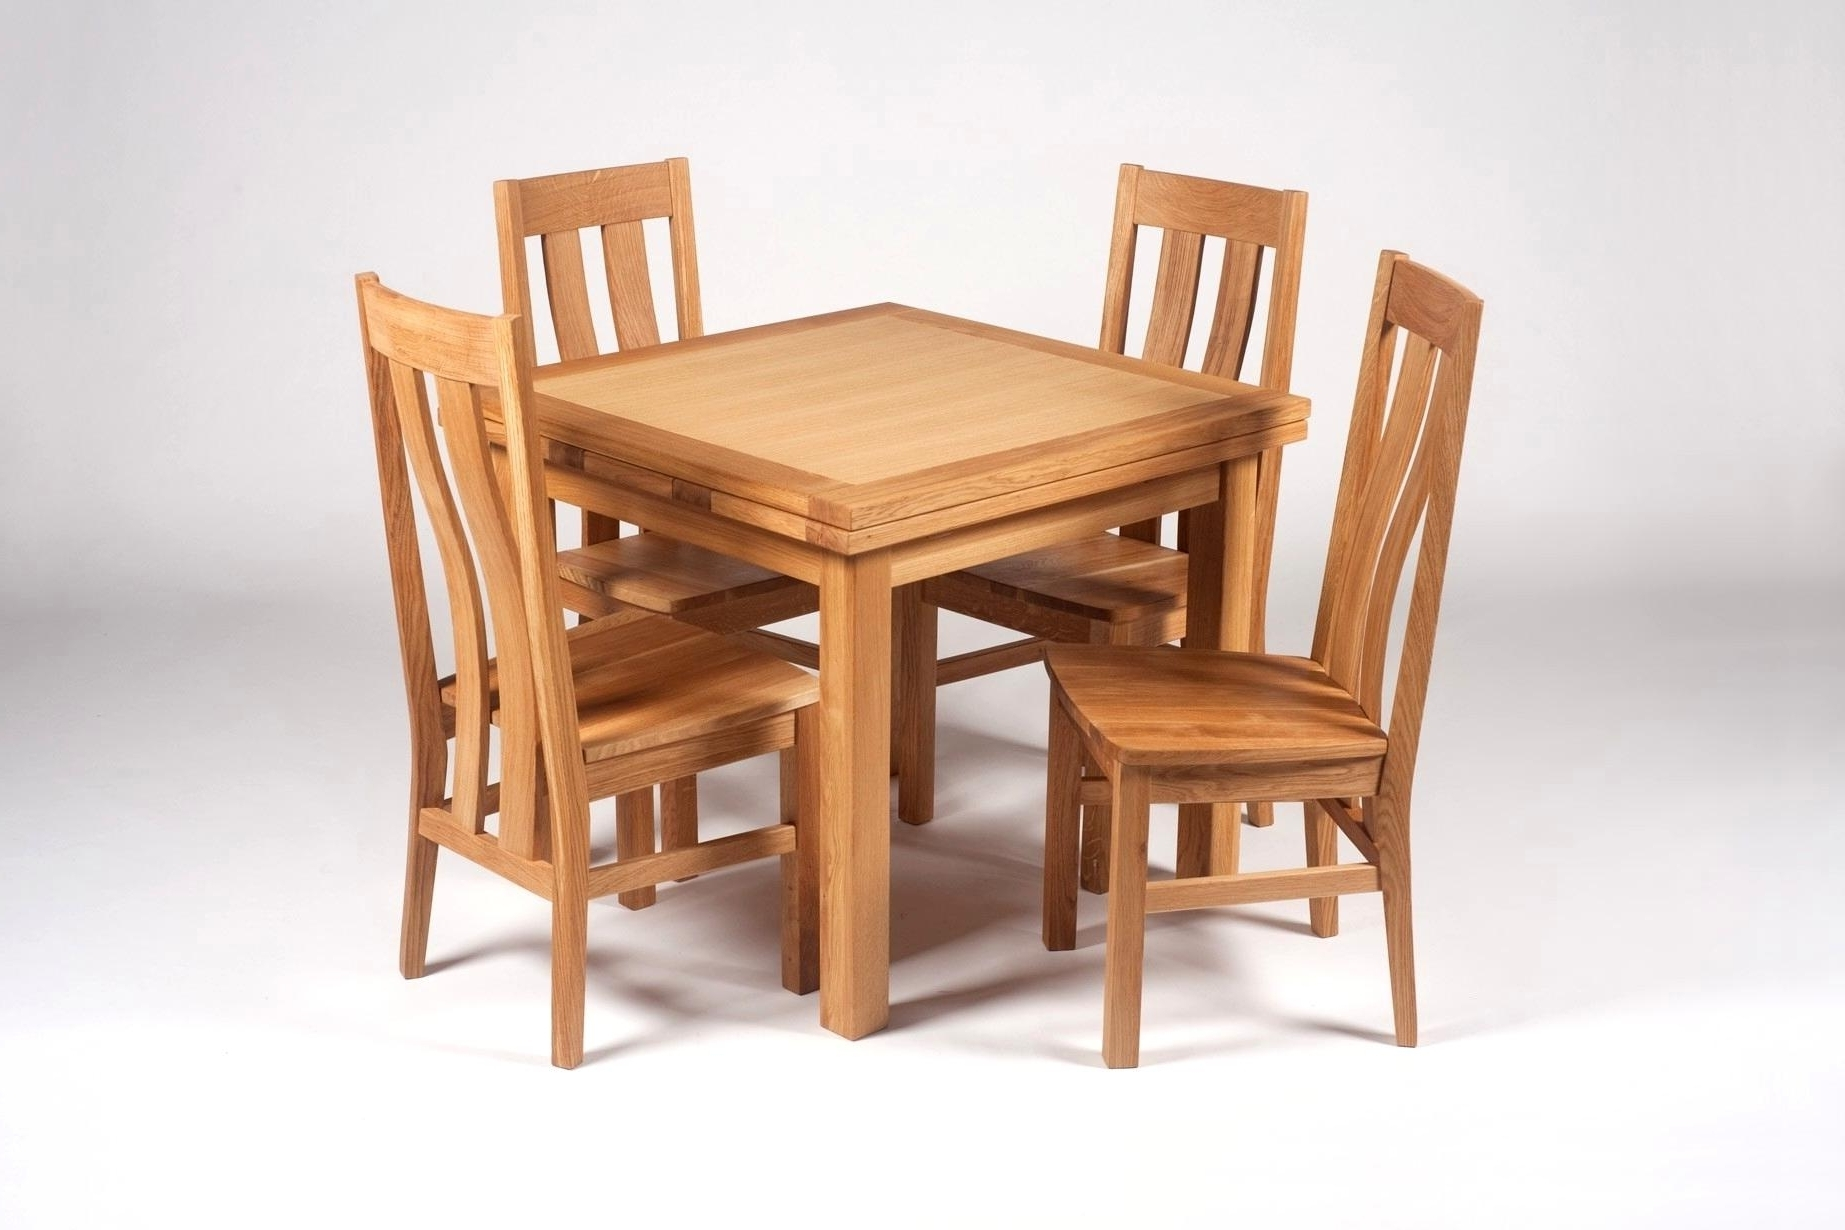 Extraordinary Good Expandable Dining Table Small Wood Chairs For Well Known Small Square Extending Dining Tables (View 7 of 25)